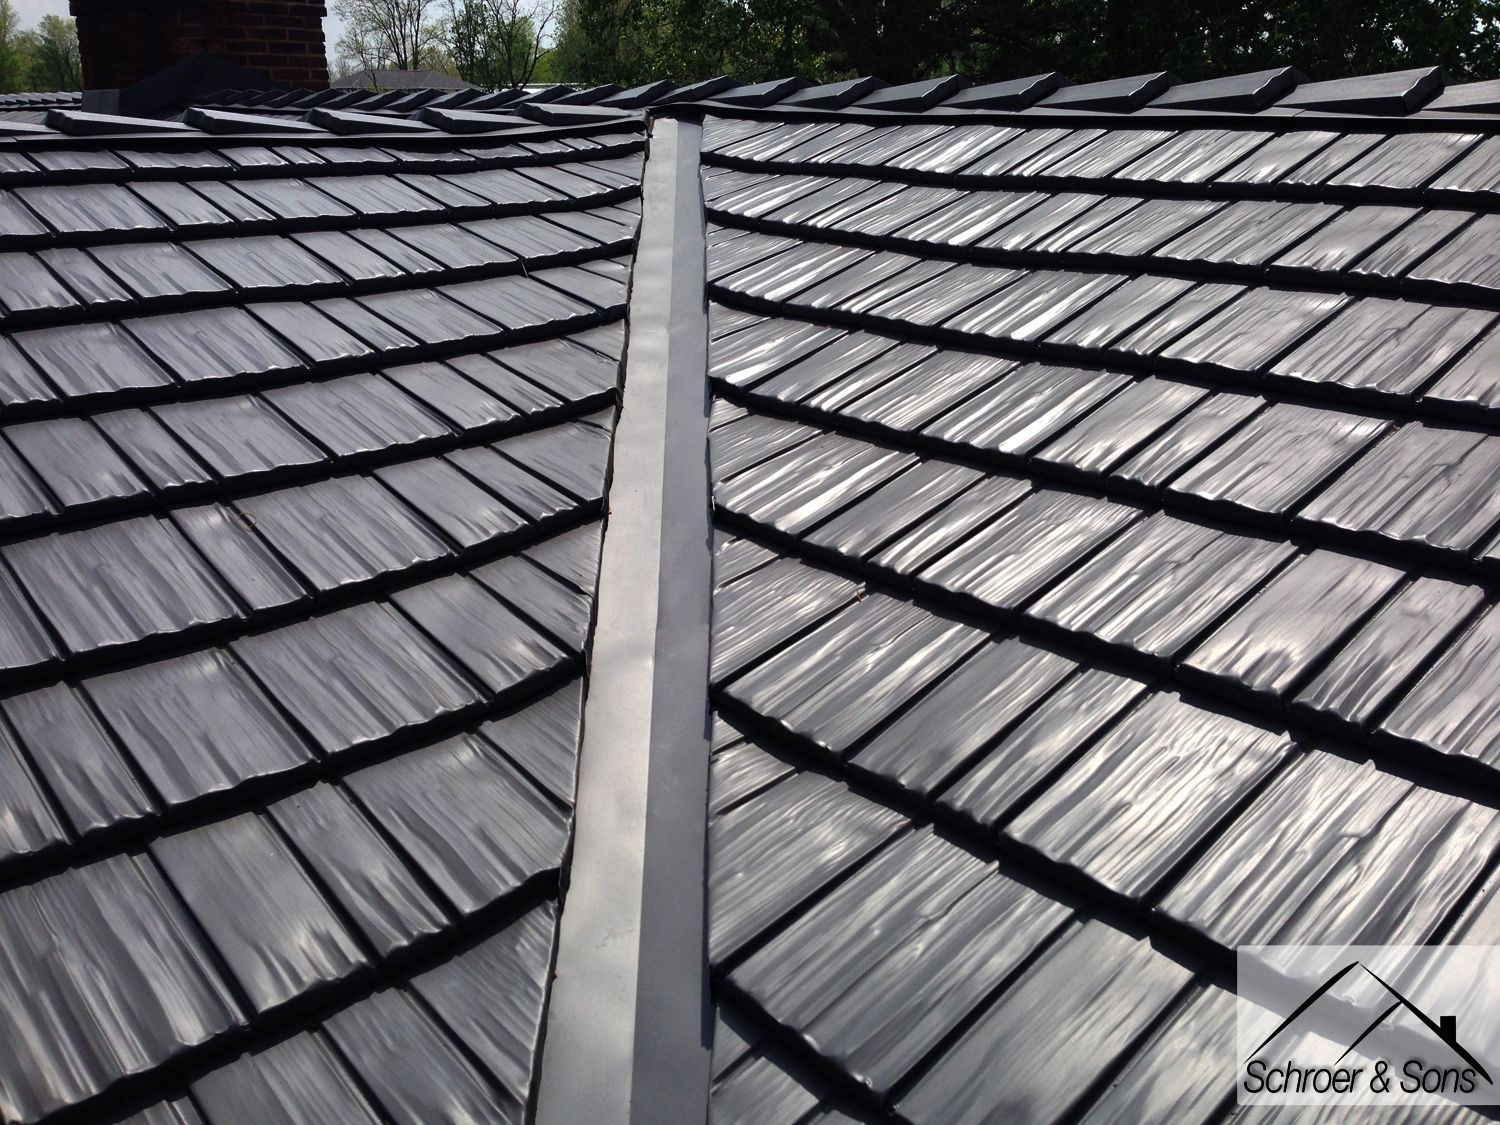 Two Rustic Shingle Metal Roof Installs Back To Back Quick Roofingshingles Metal Shingle Roof Metal Roof Metal Shingles